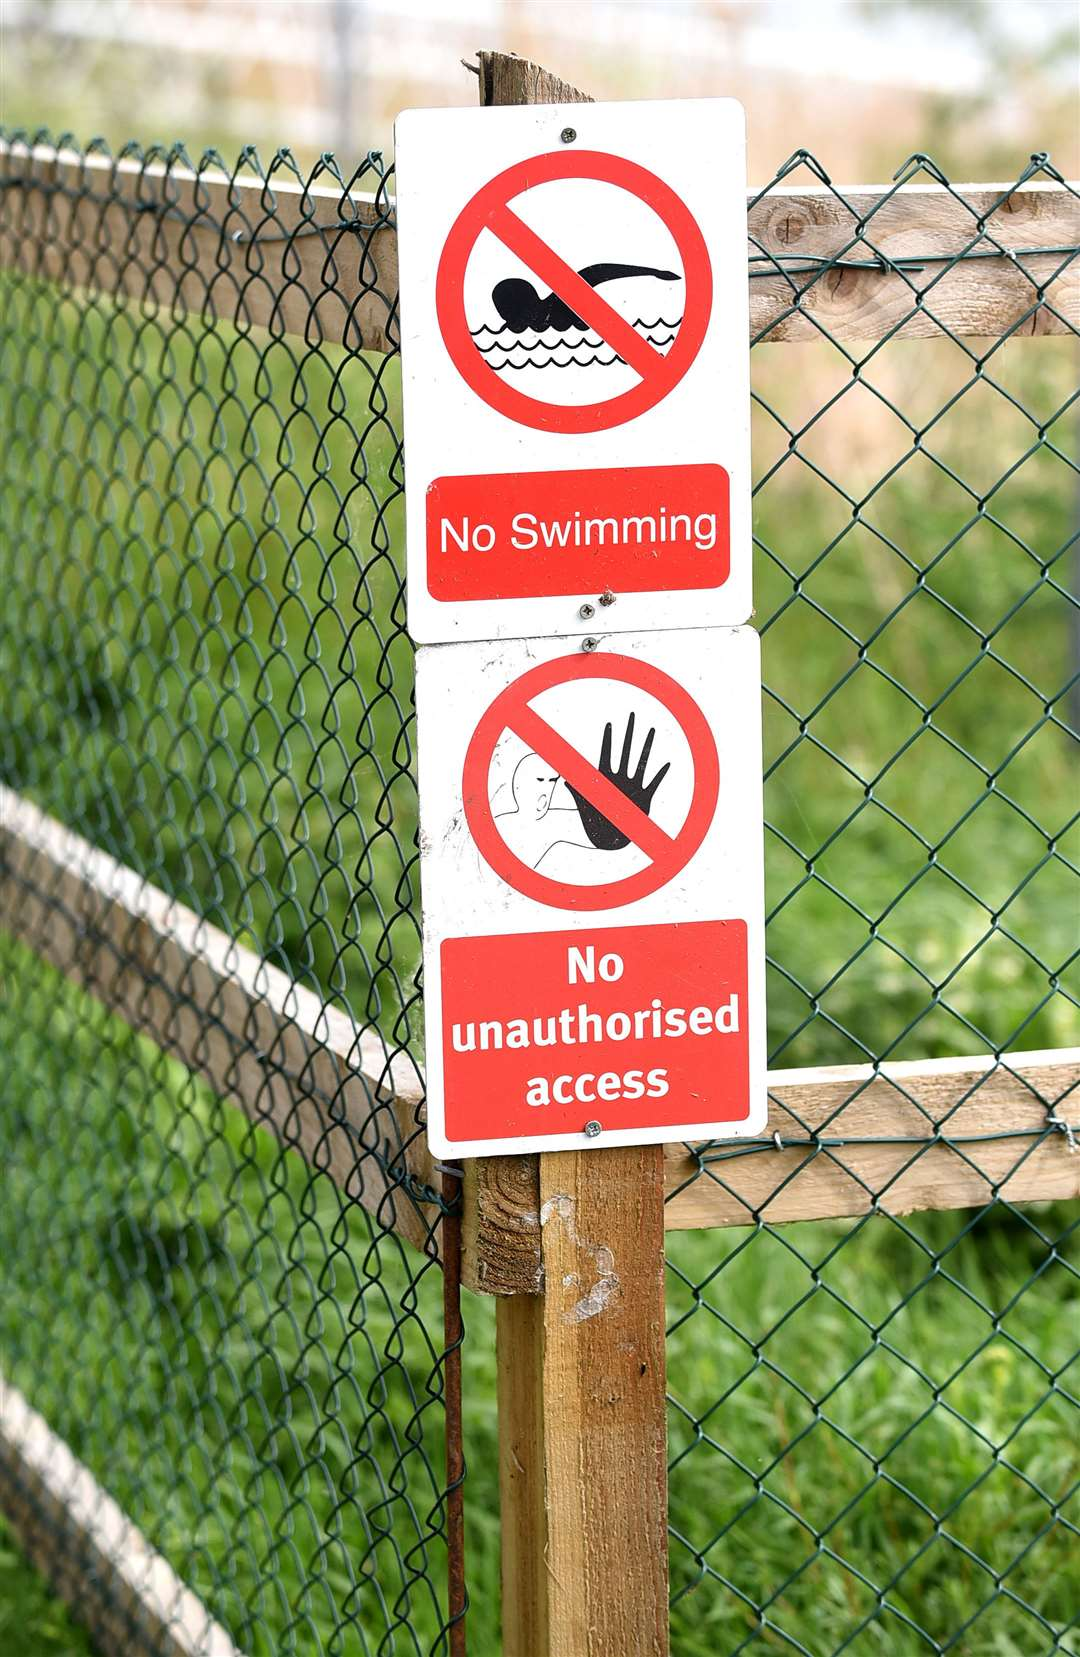 Environment Agency signs emphasise people should not swim at the mooring